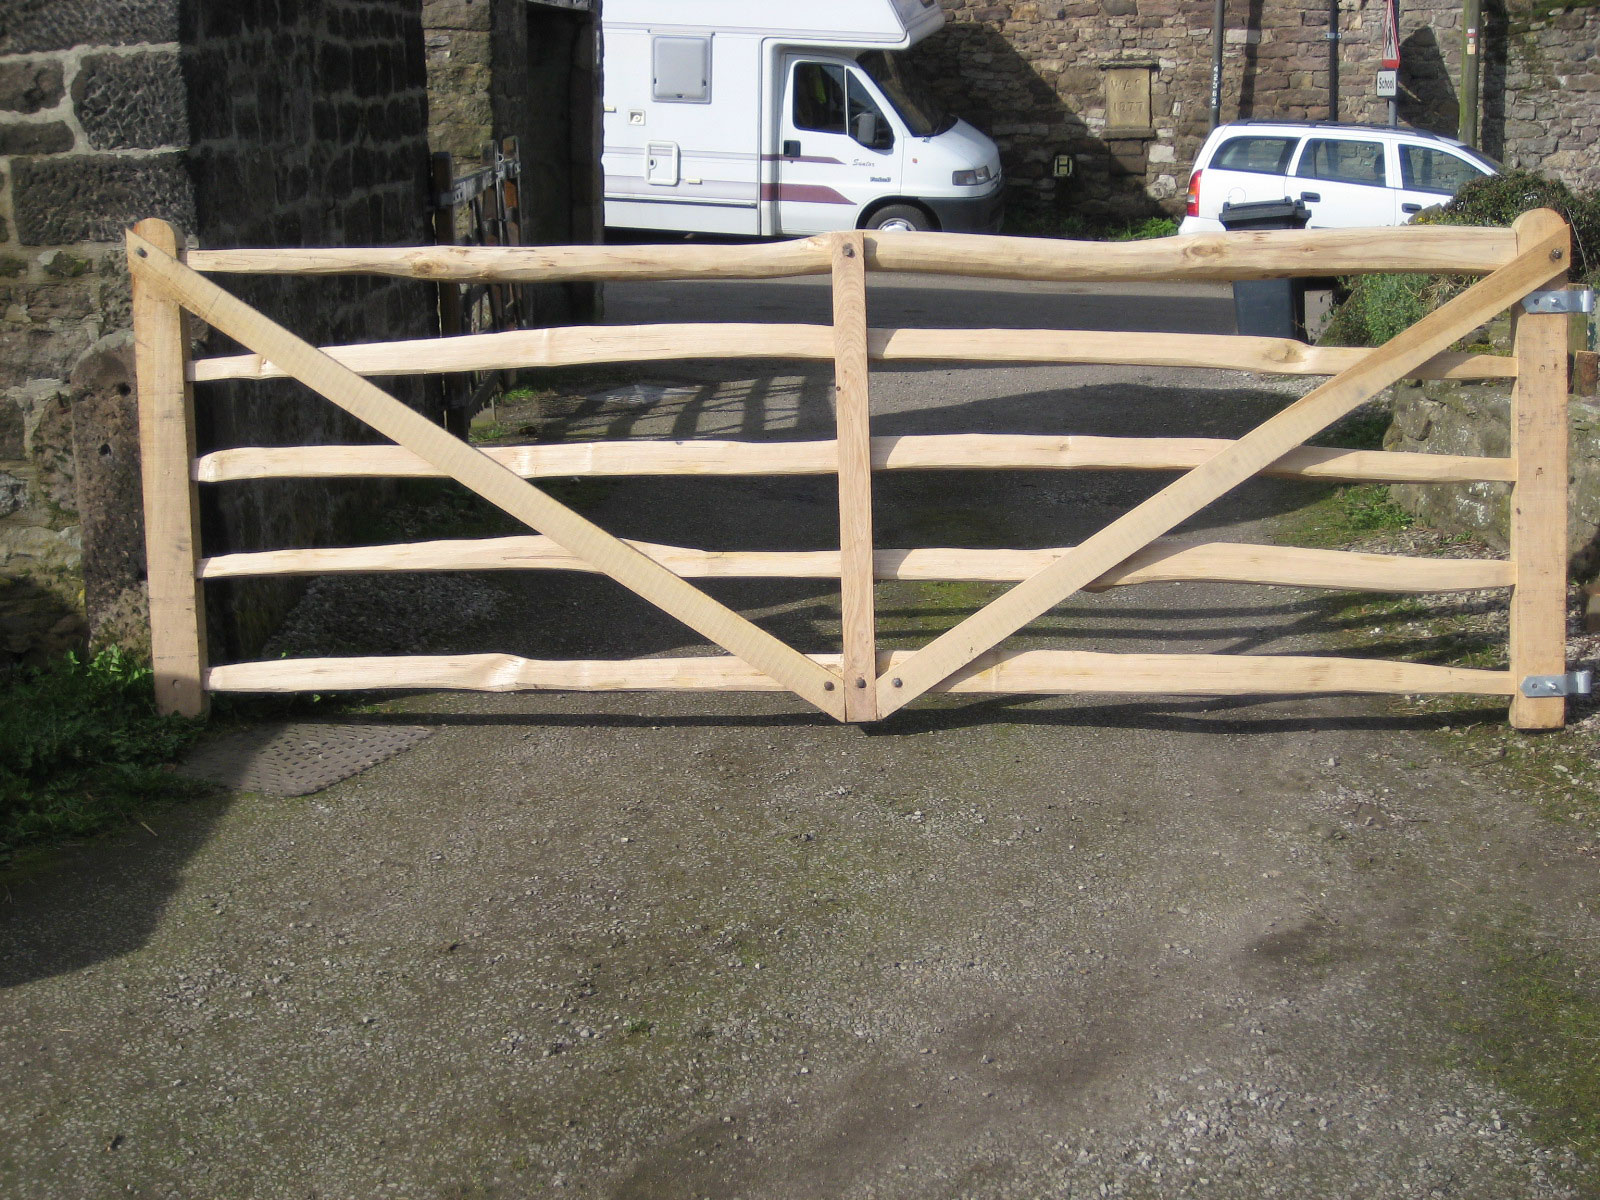 <span>Ref: F8</span><br>A half diamond pattern gate with all rails of cleft chestnut, the remaining parts of sawn oak, sent to Ireland, 4' x 10' long; £1160 inc VAT.